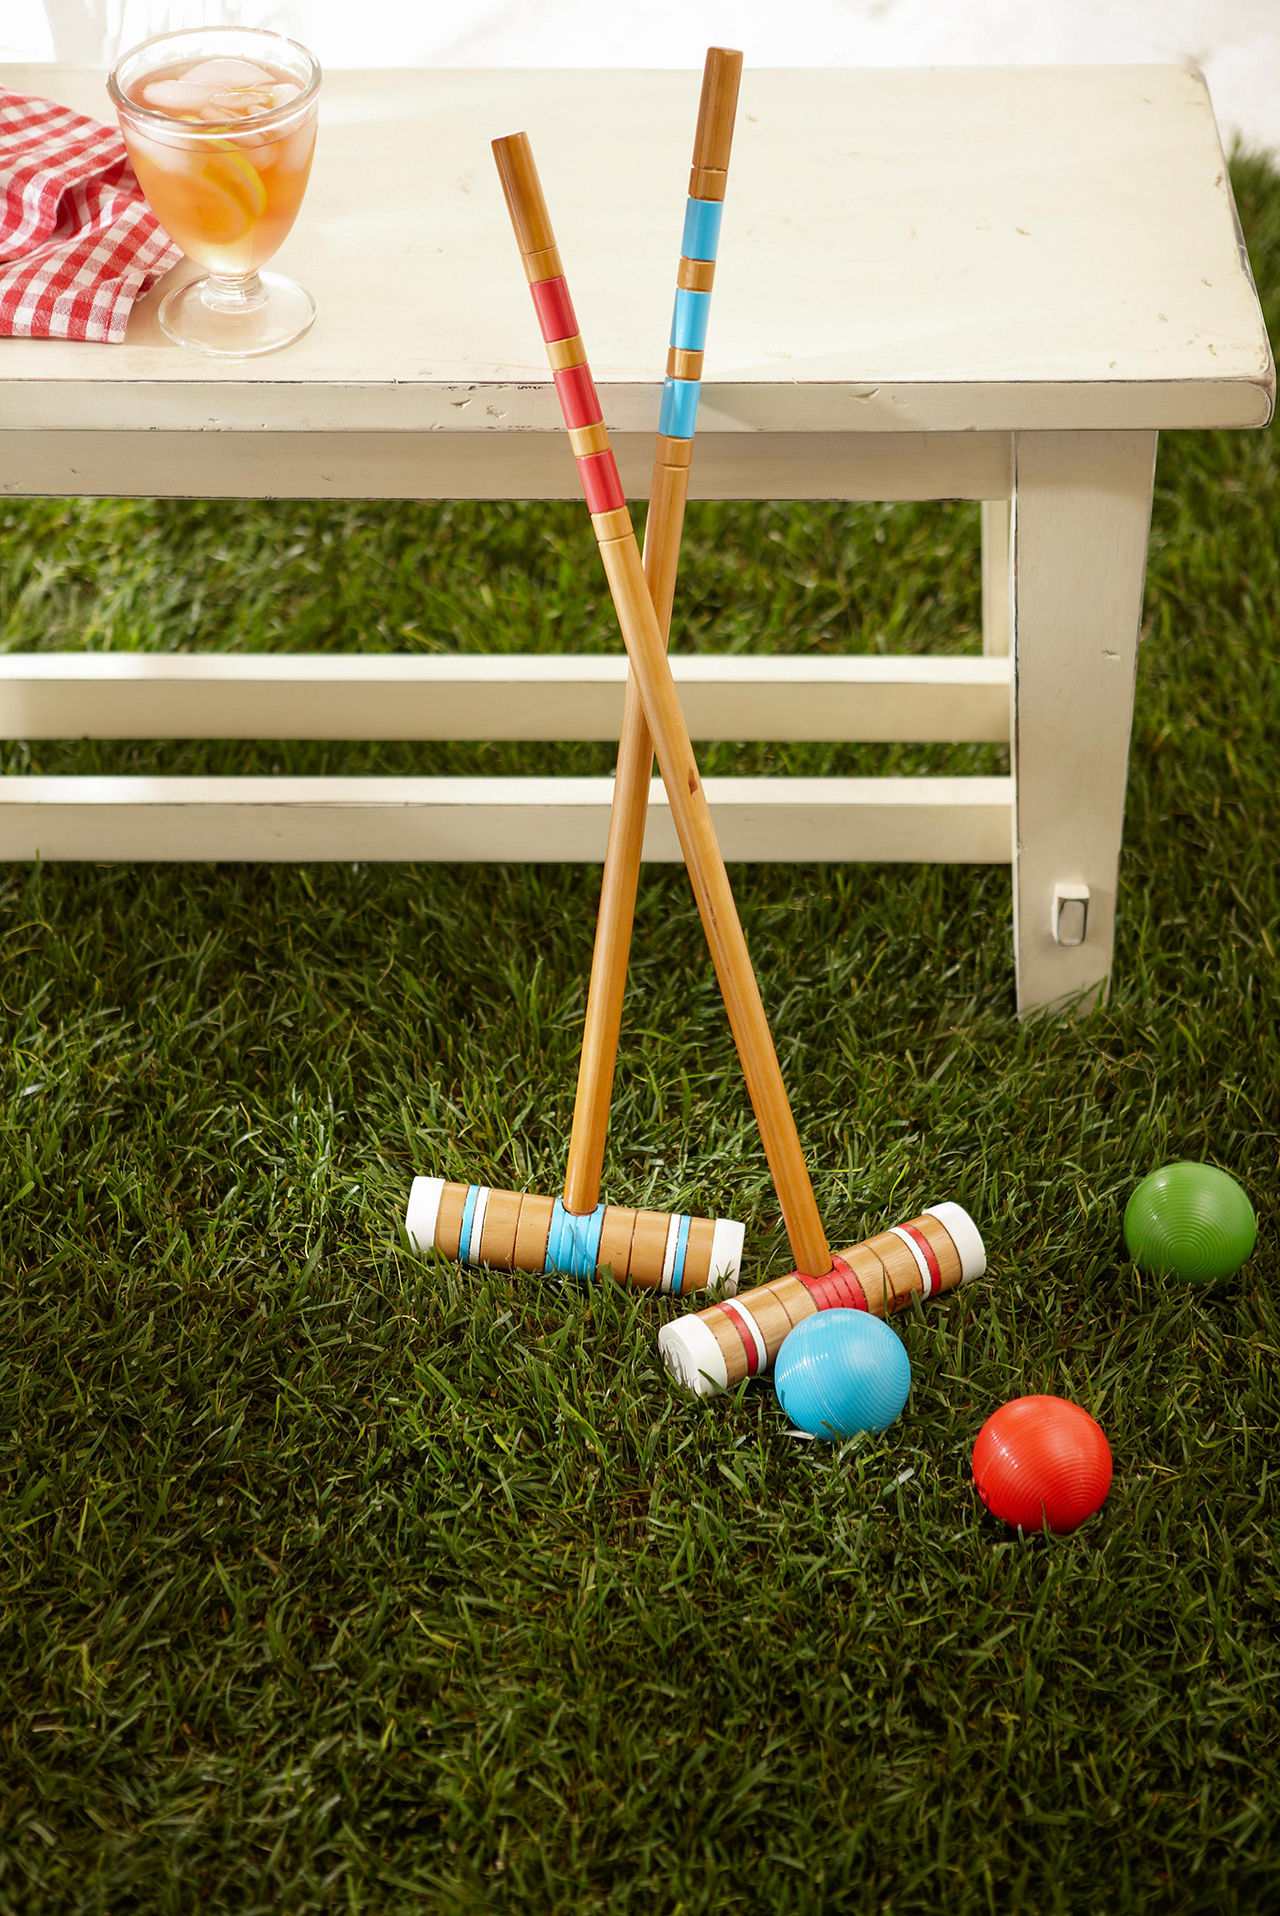 croquet mallets leaning against white bench with croquet balls on ground